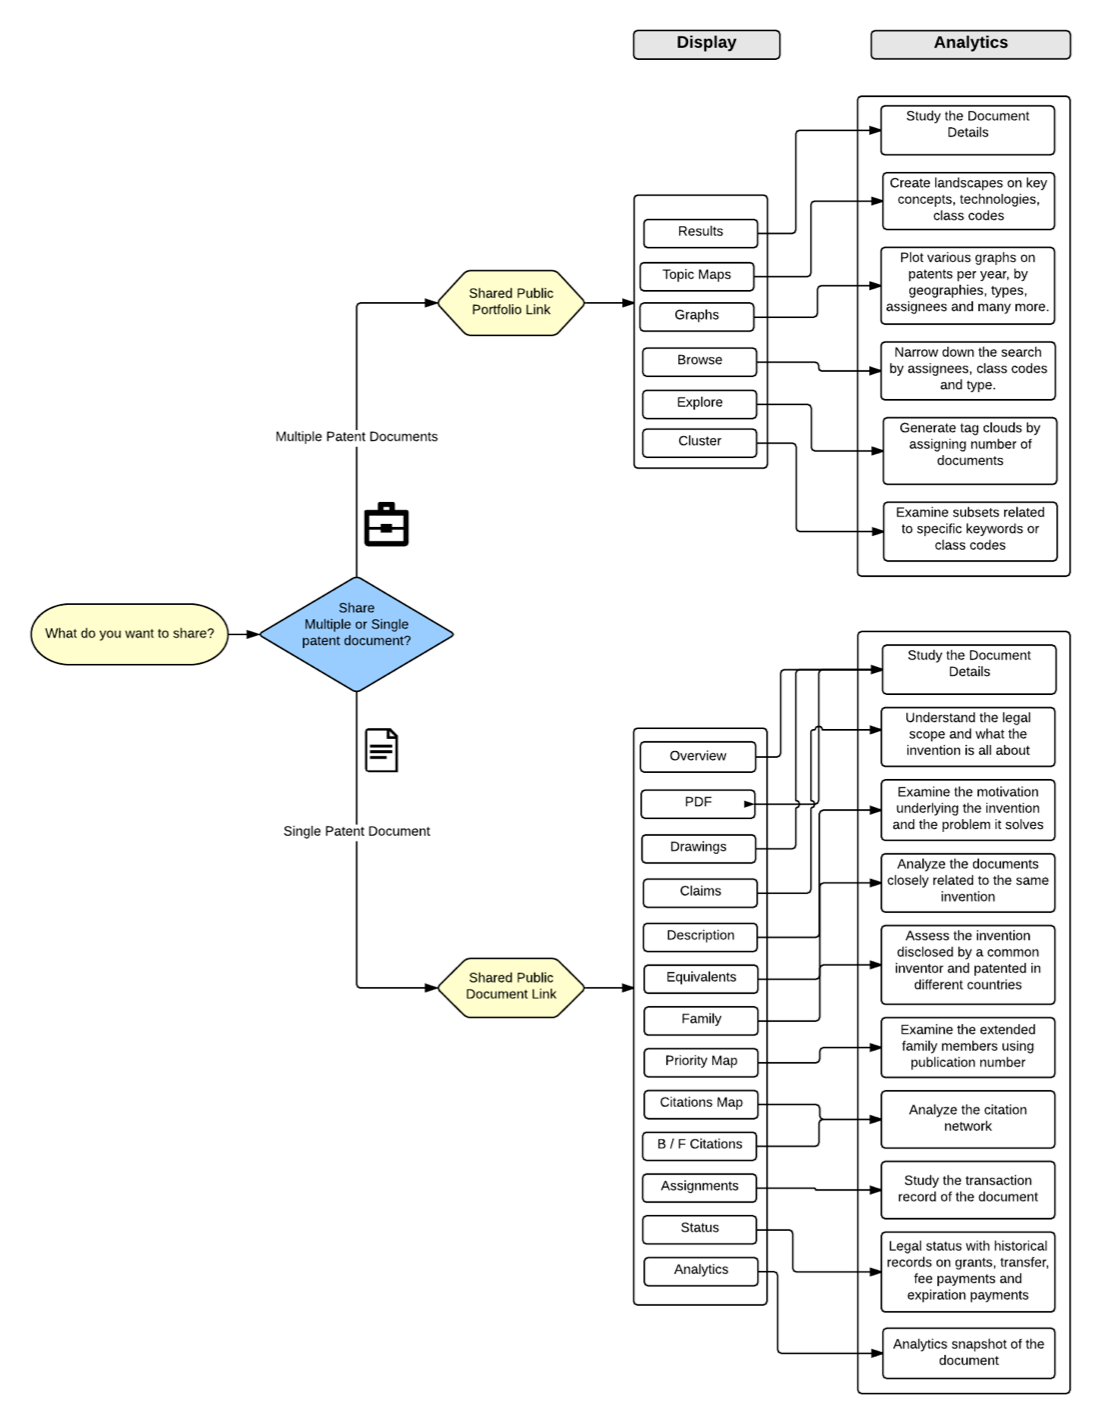 FLOWCHART OF POTENTIAL USES FOR PUBLIC DOCUMENTS AND PORTFOLIOS.